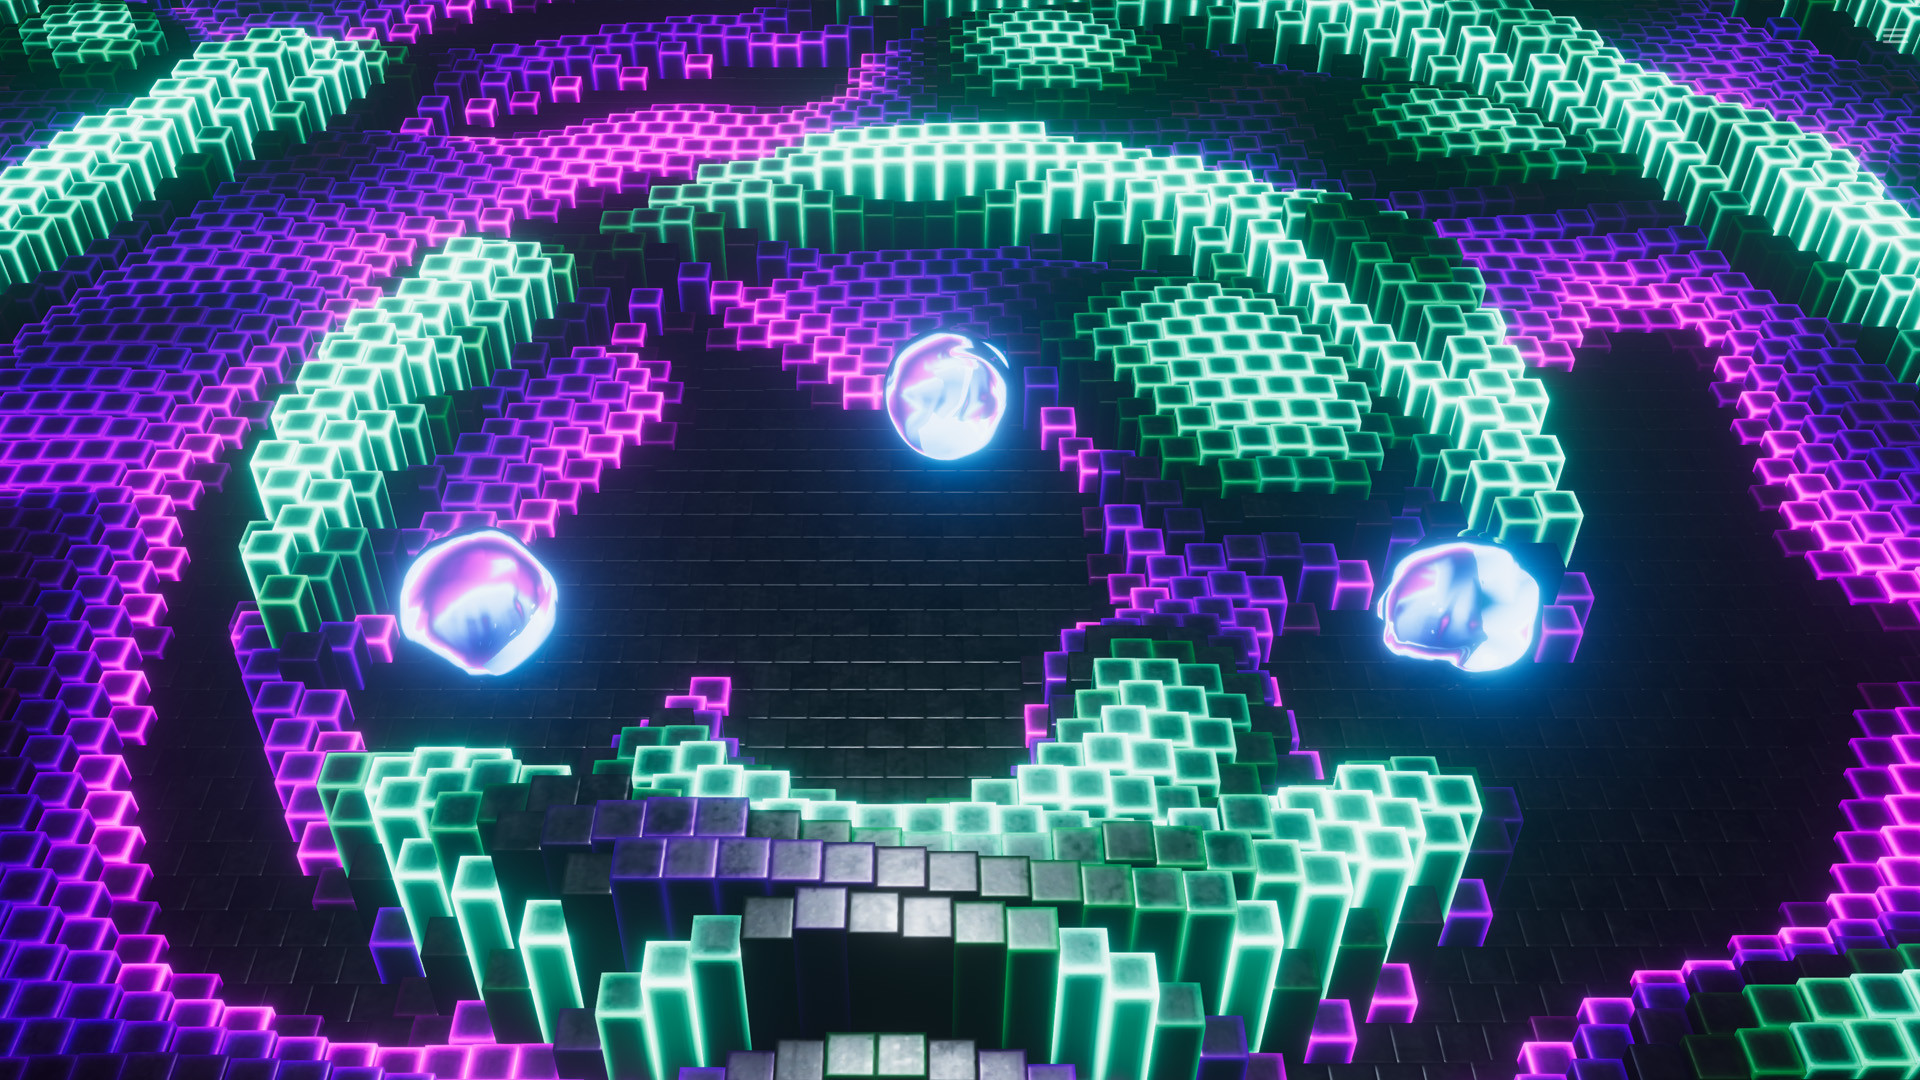 Music Visualizer Engine PC Live Wallpaper on Steam